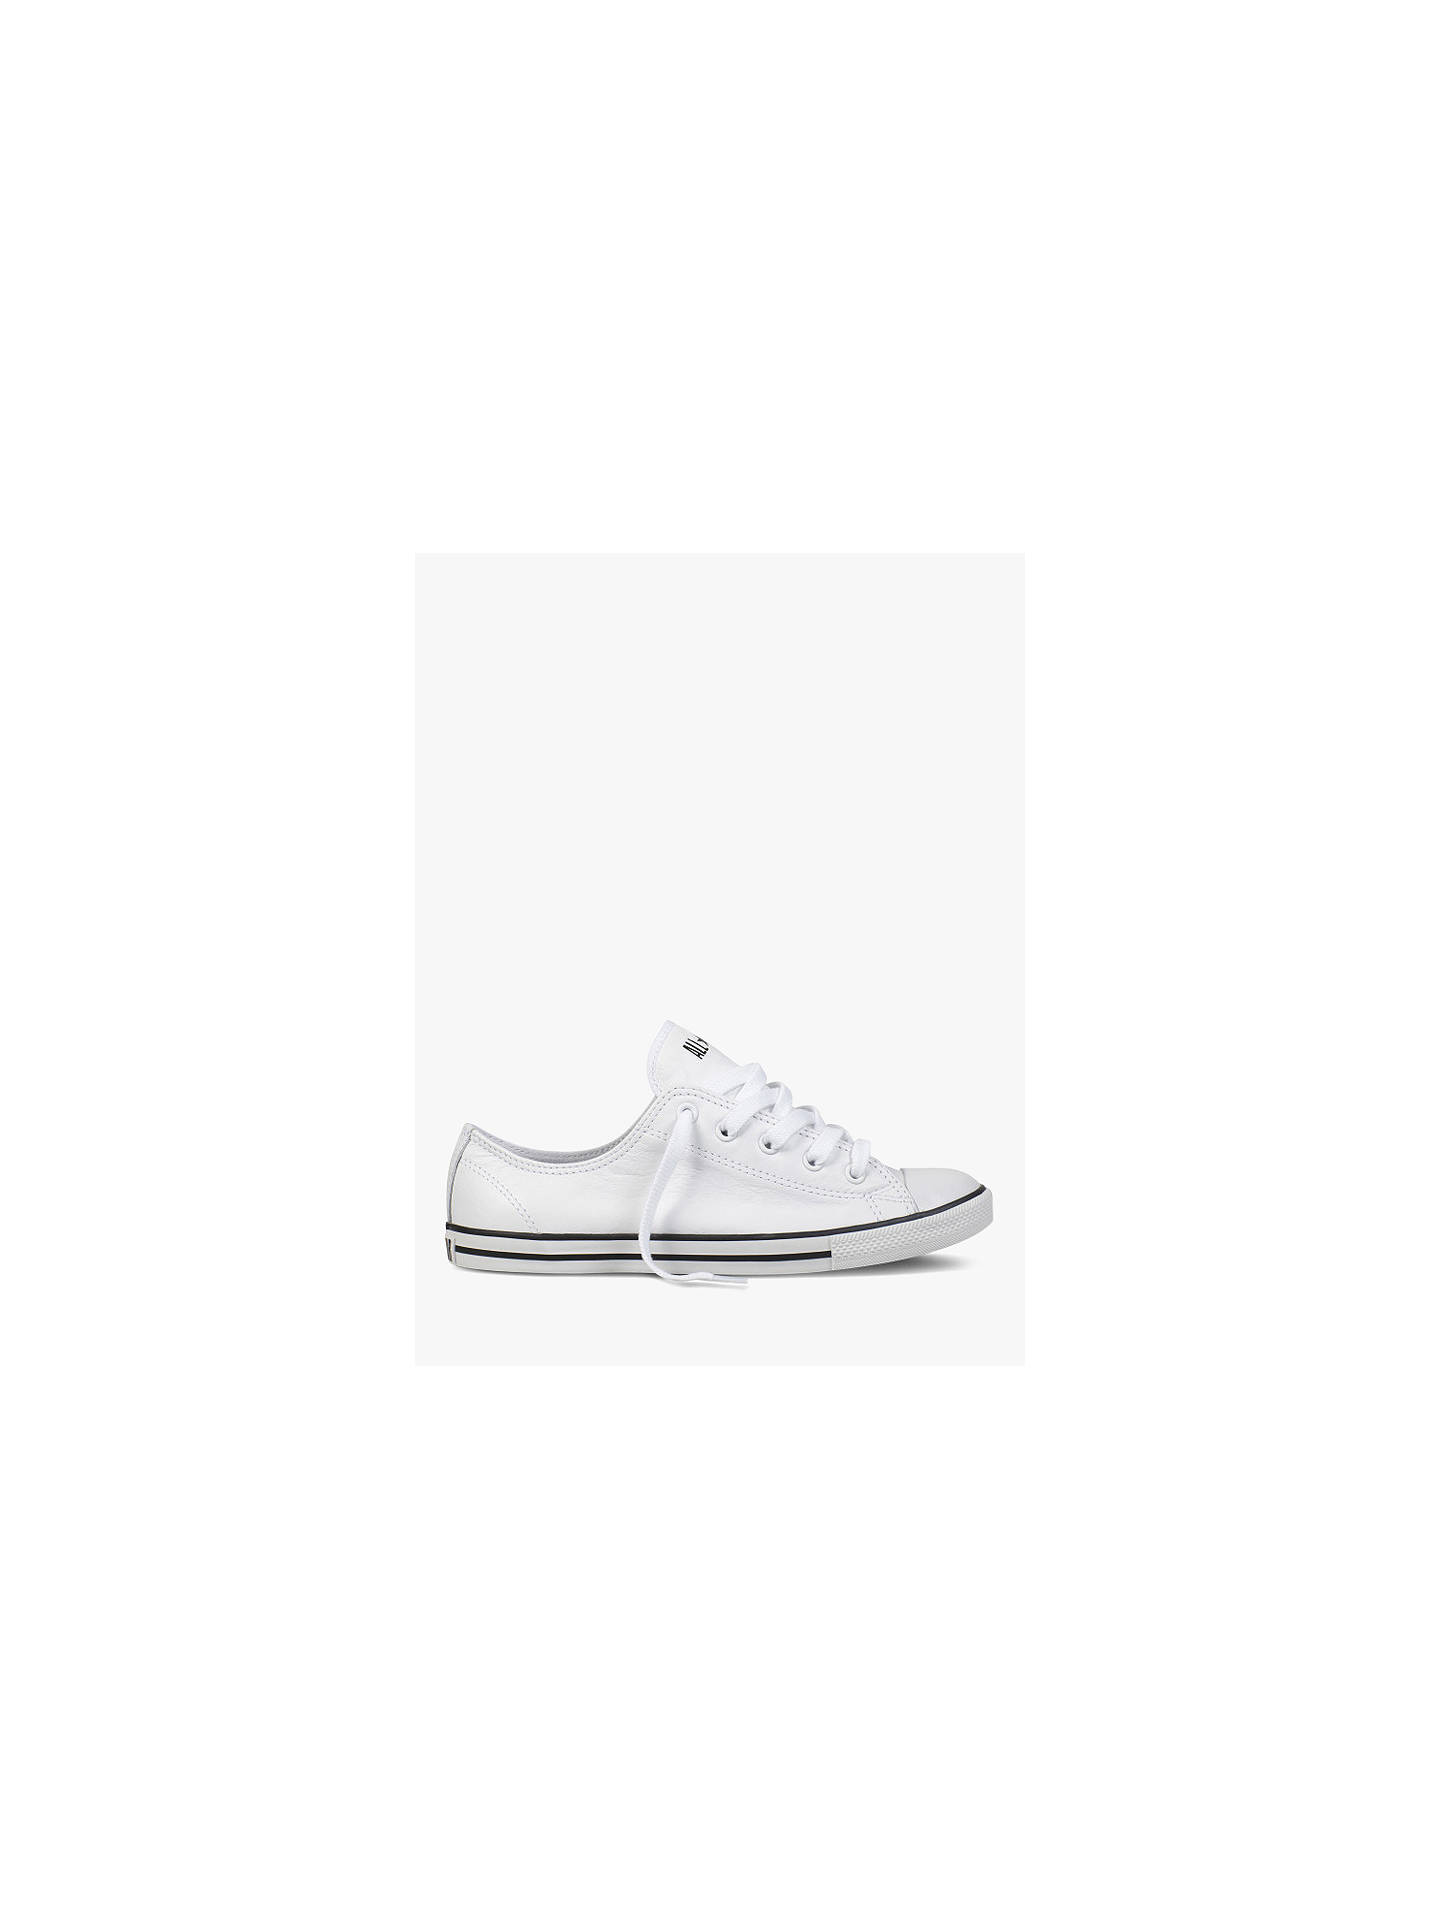 Converse Chuck Taylor All Star Women s Dainty Leather Trainers ... eed733ec9